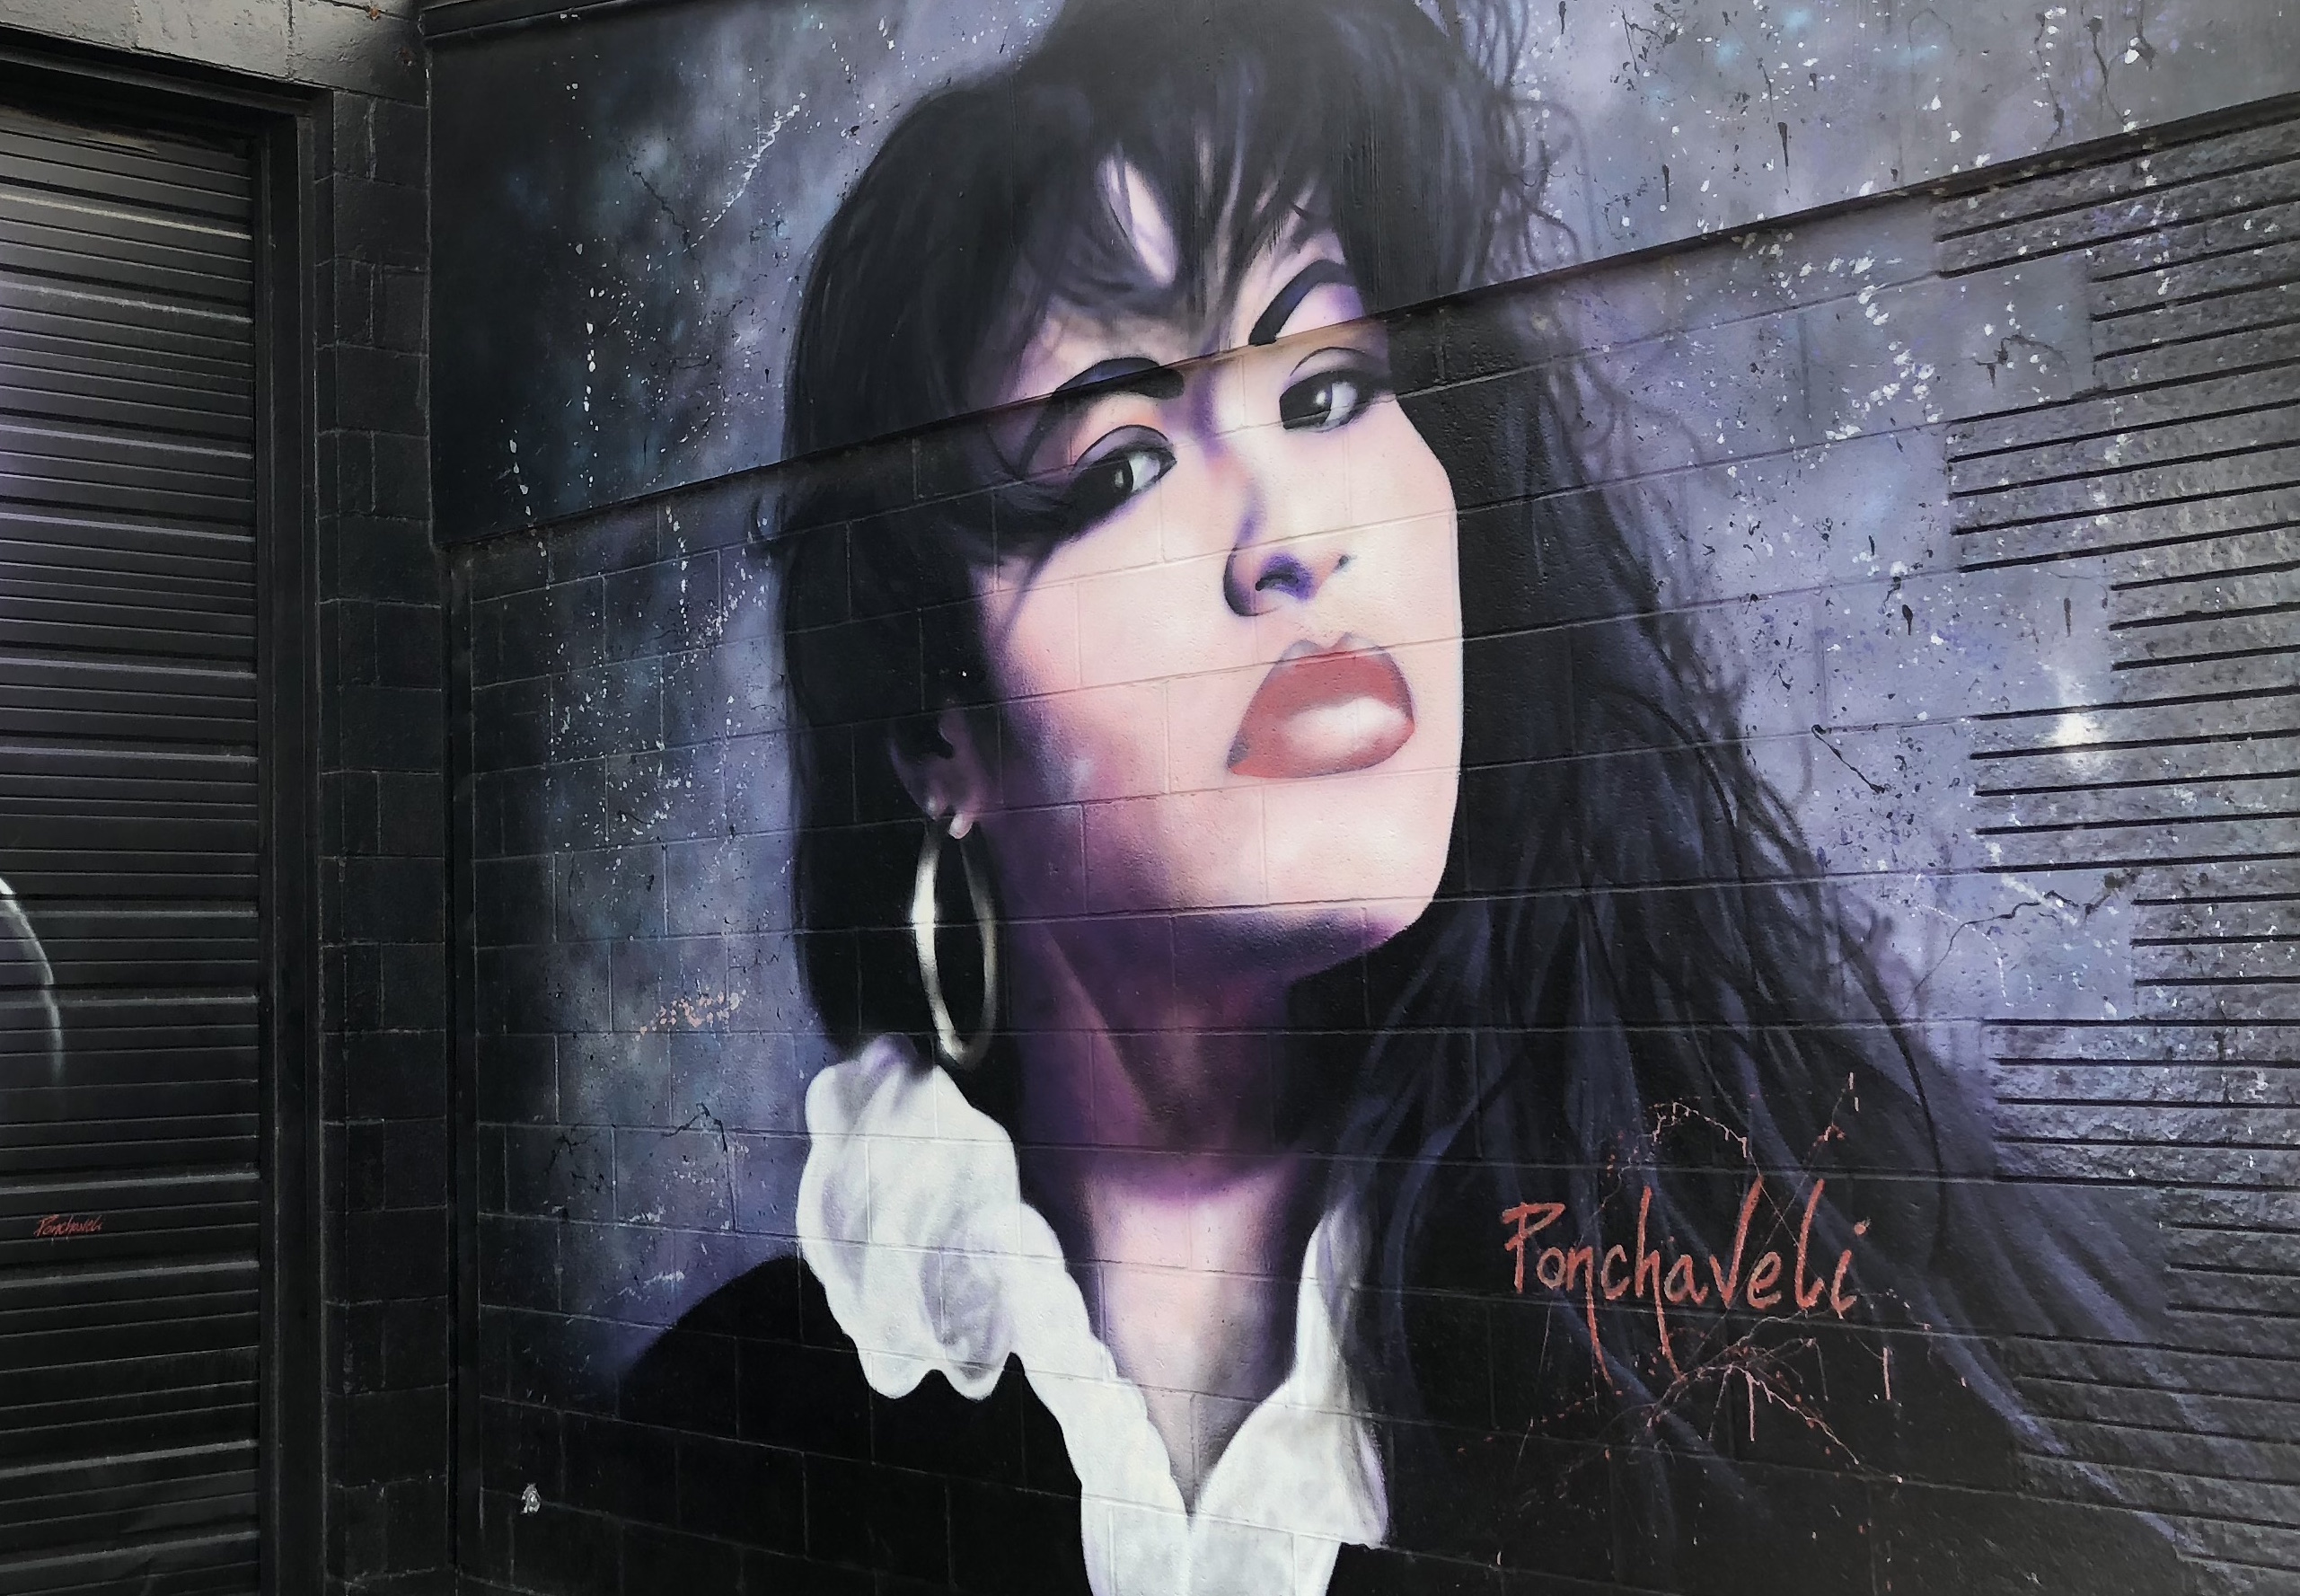 A Dallas Brewery Will Celebrate Queen of Tejano Selena Quintanilla Perez With Brunch